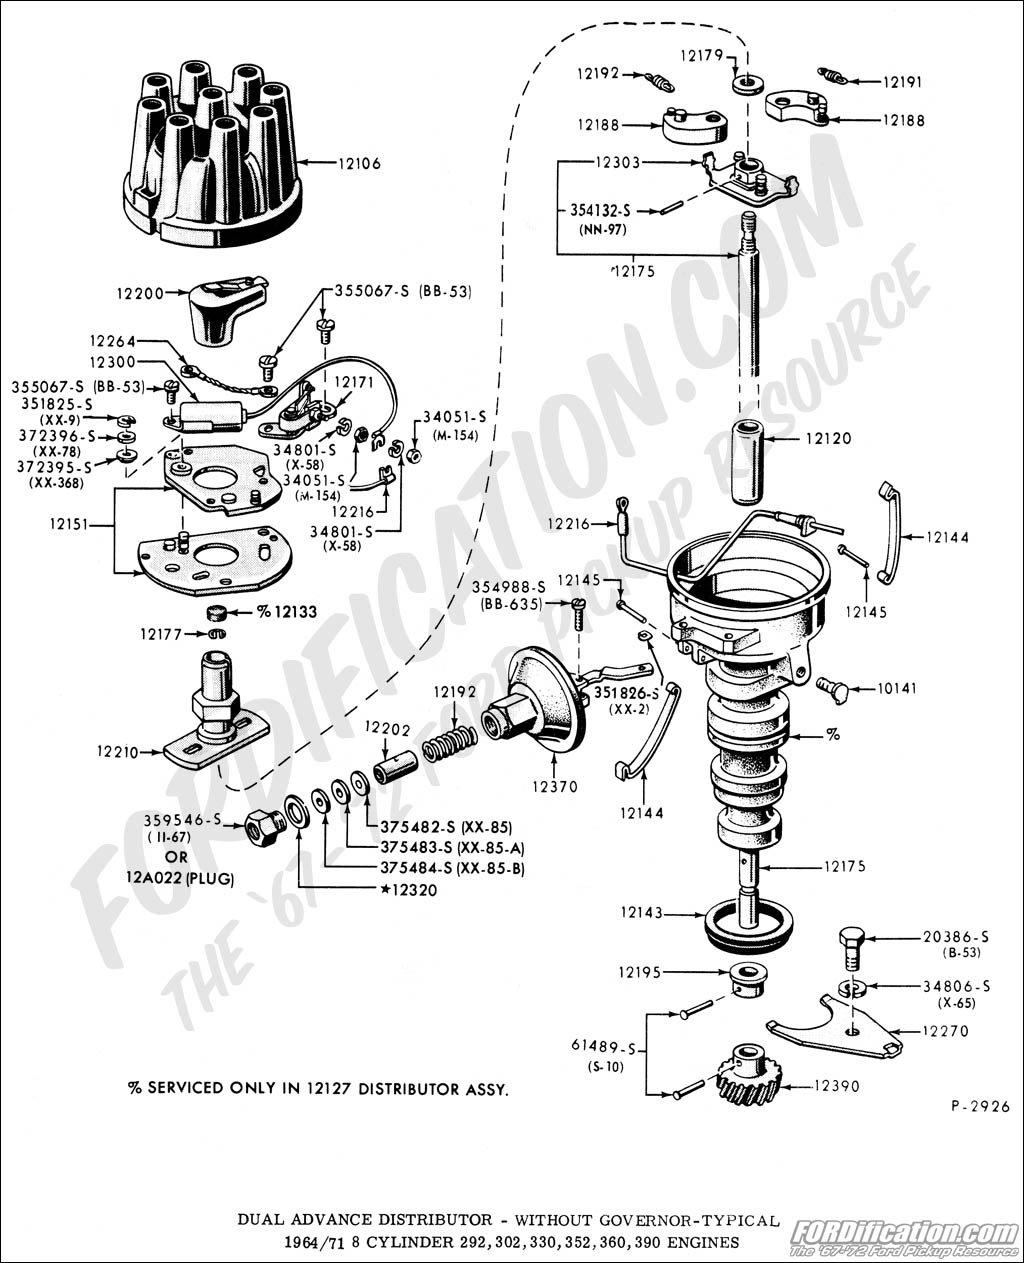 1970 Ford 302 Wiring Schematics Wireless 360 Controller Parts Schematic Plymouth Cukk Jeanjaures37 Fr